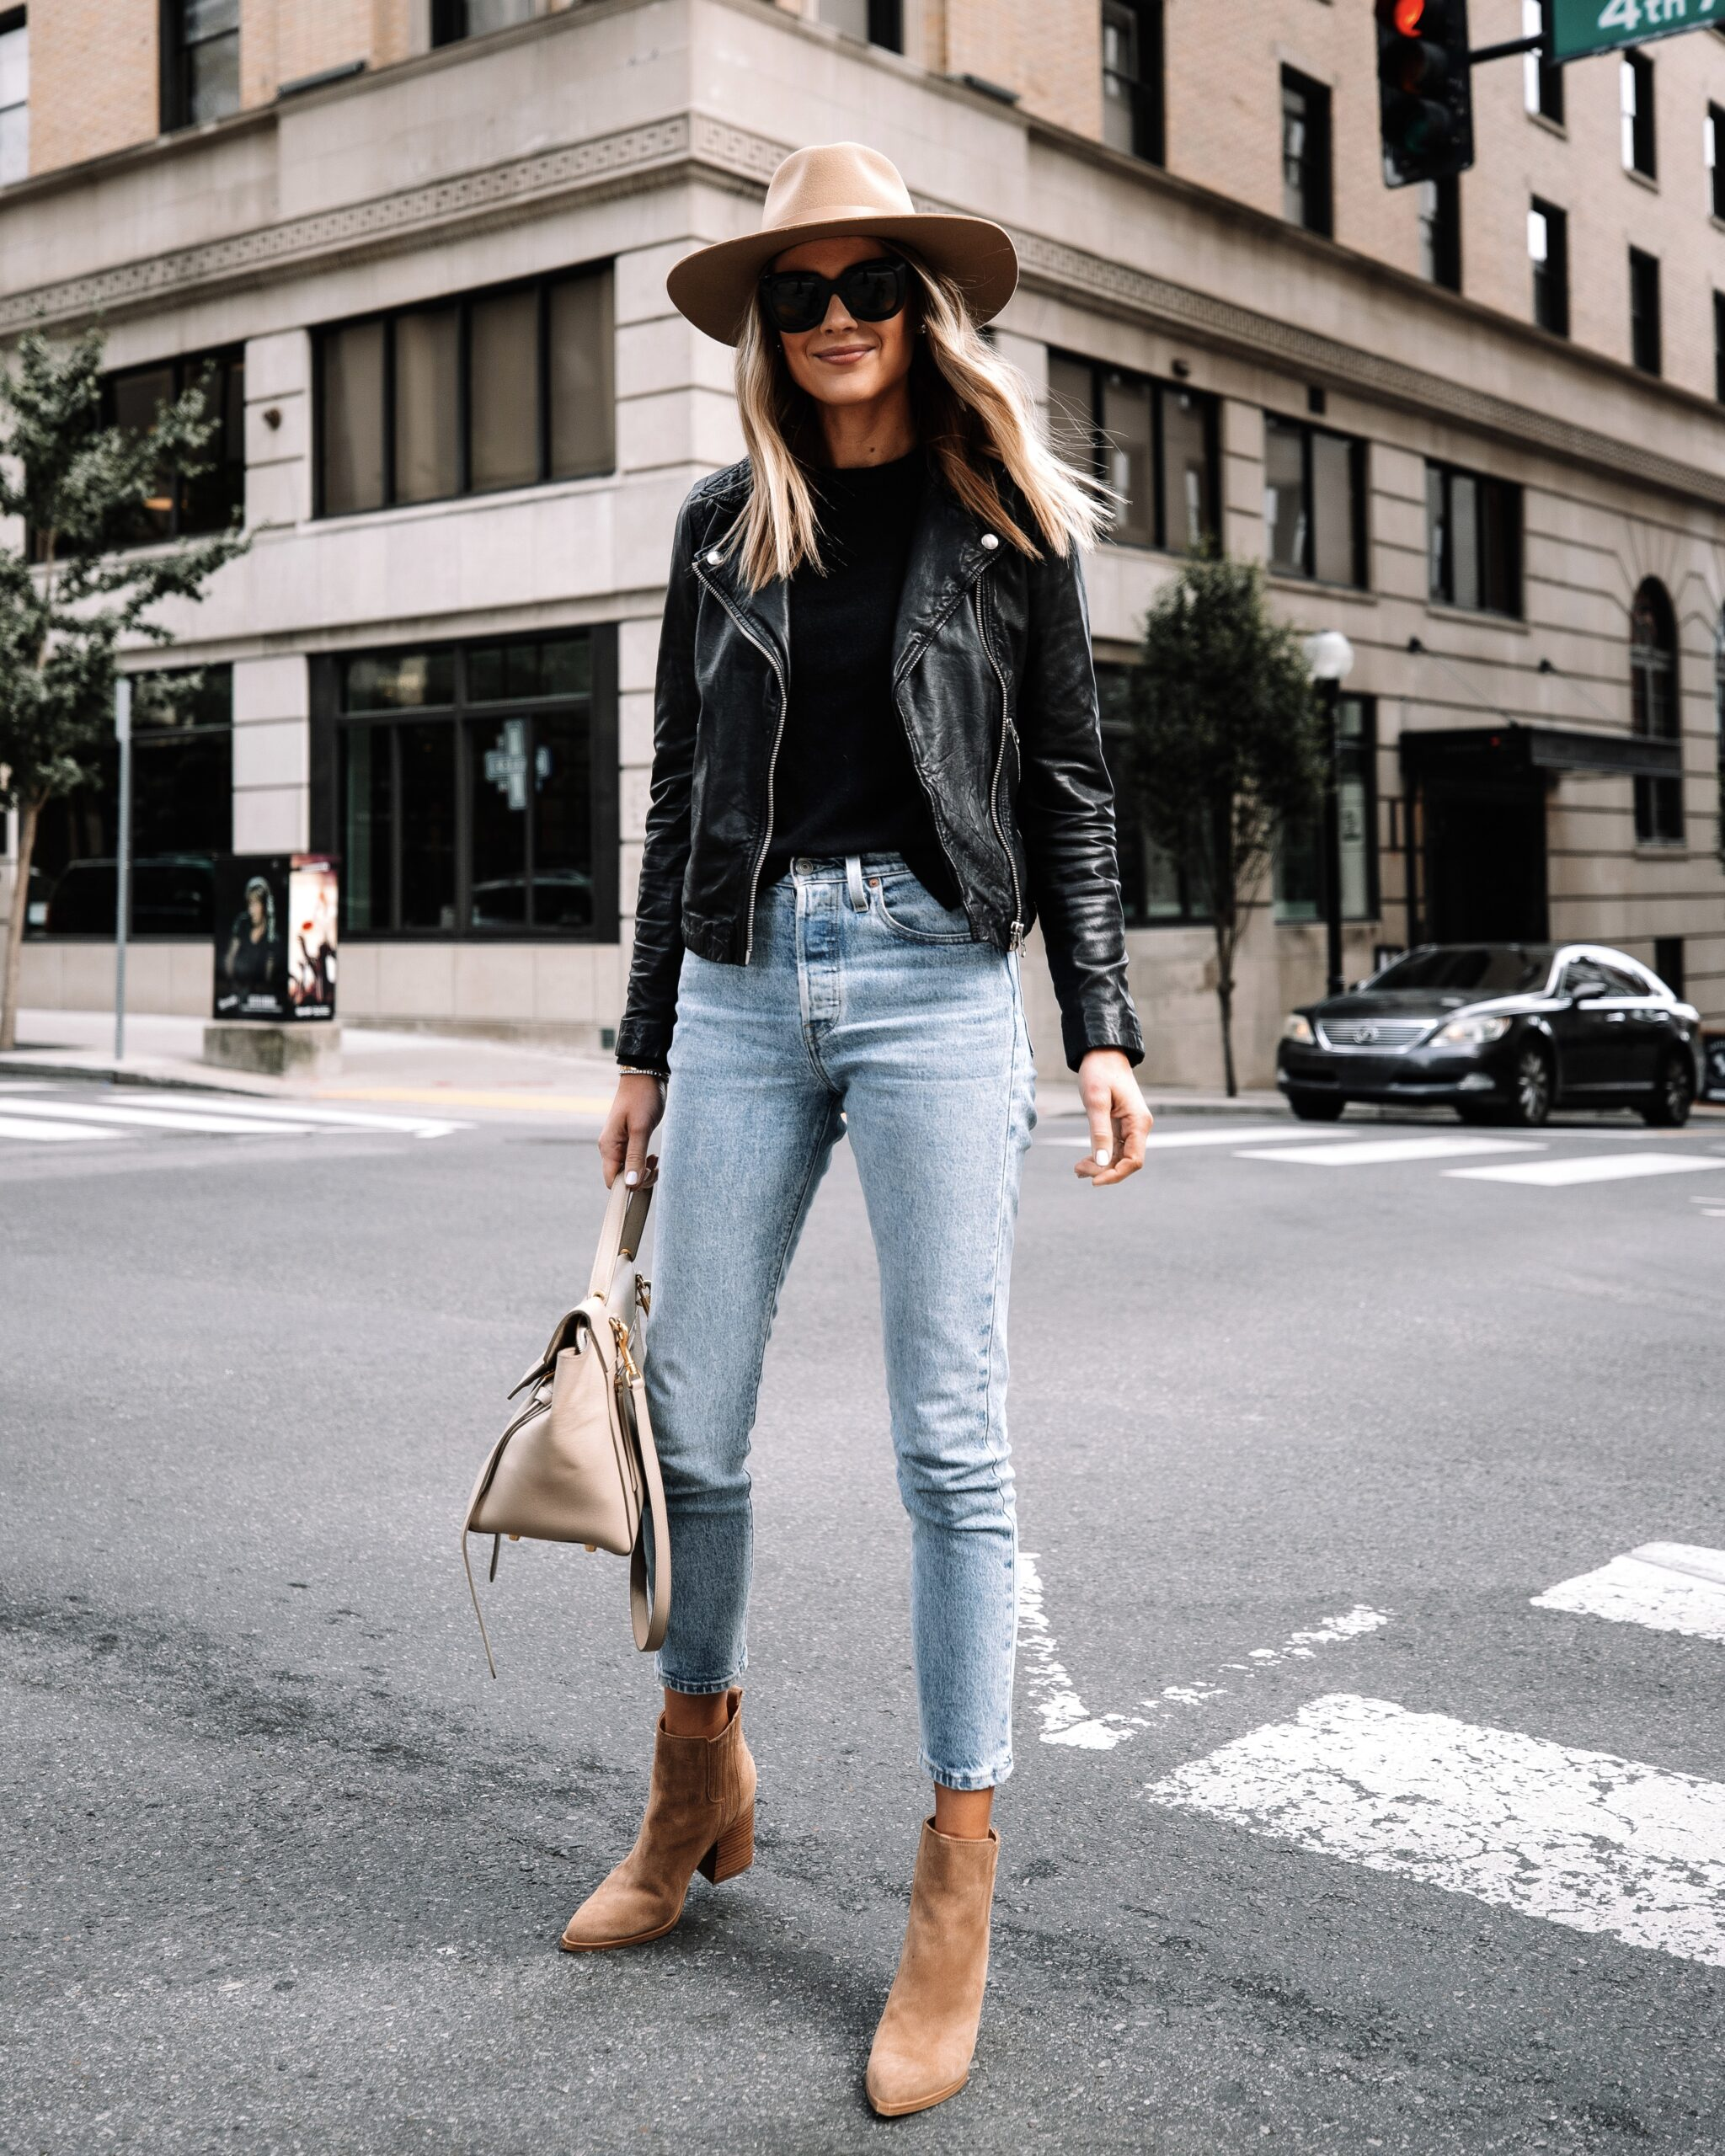 Fashion Jackson Wearing Black Leather Jacket Levis Jeans Tan Suede Booties Tan Fall Hat